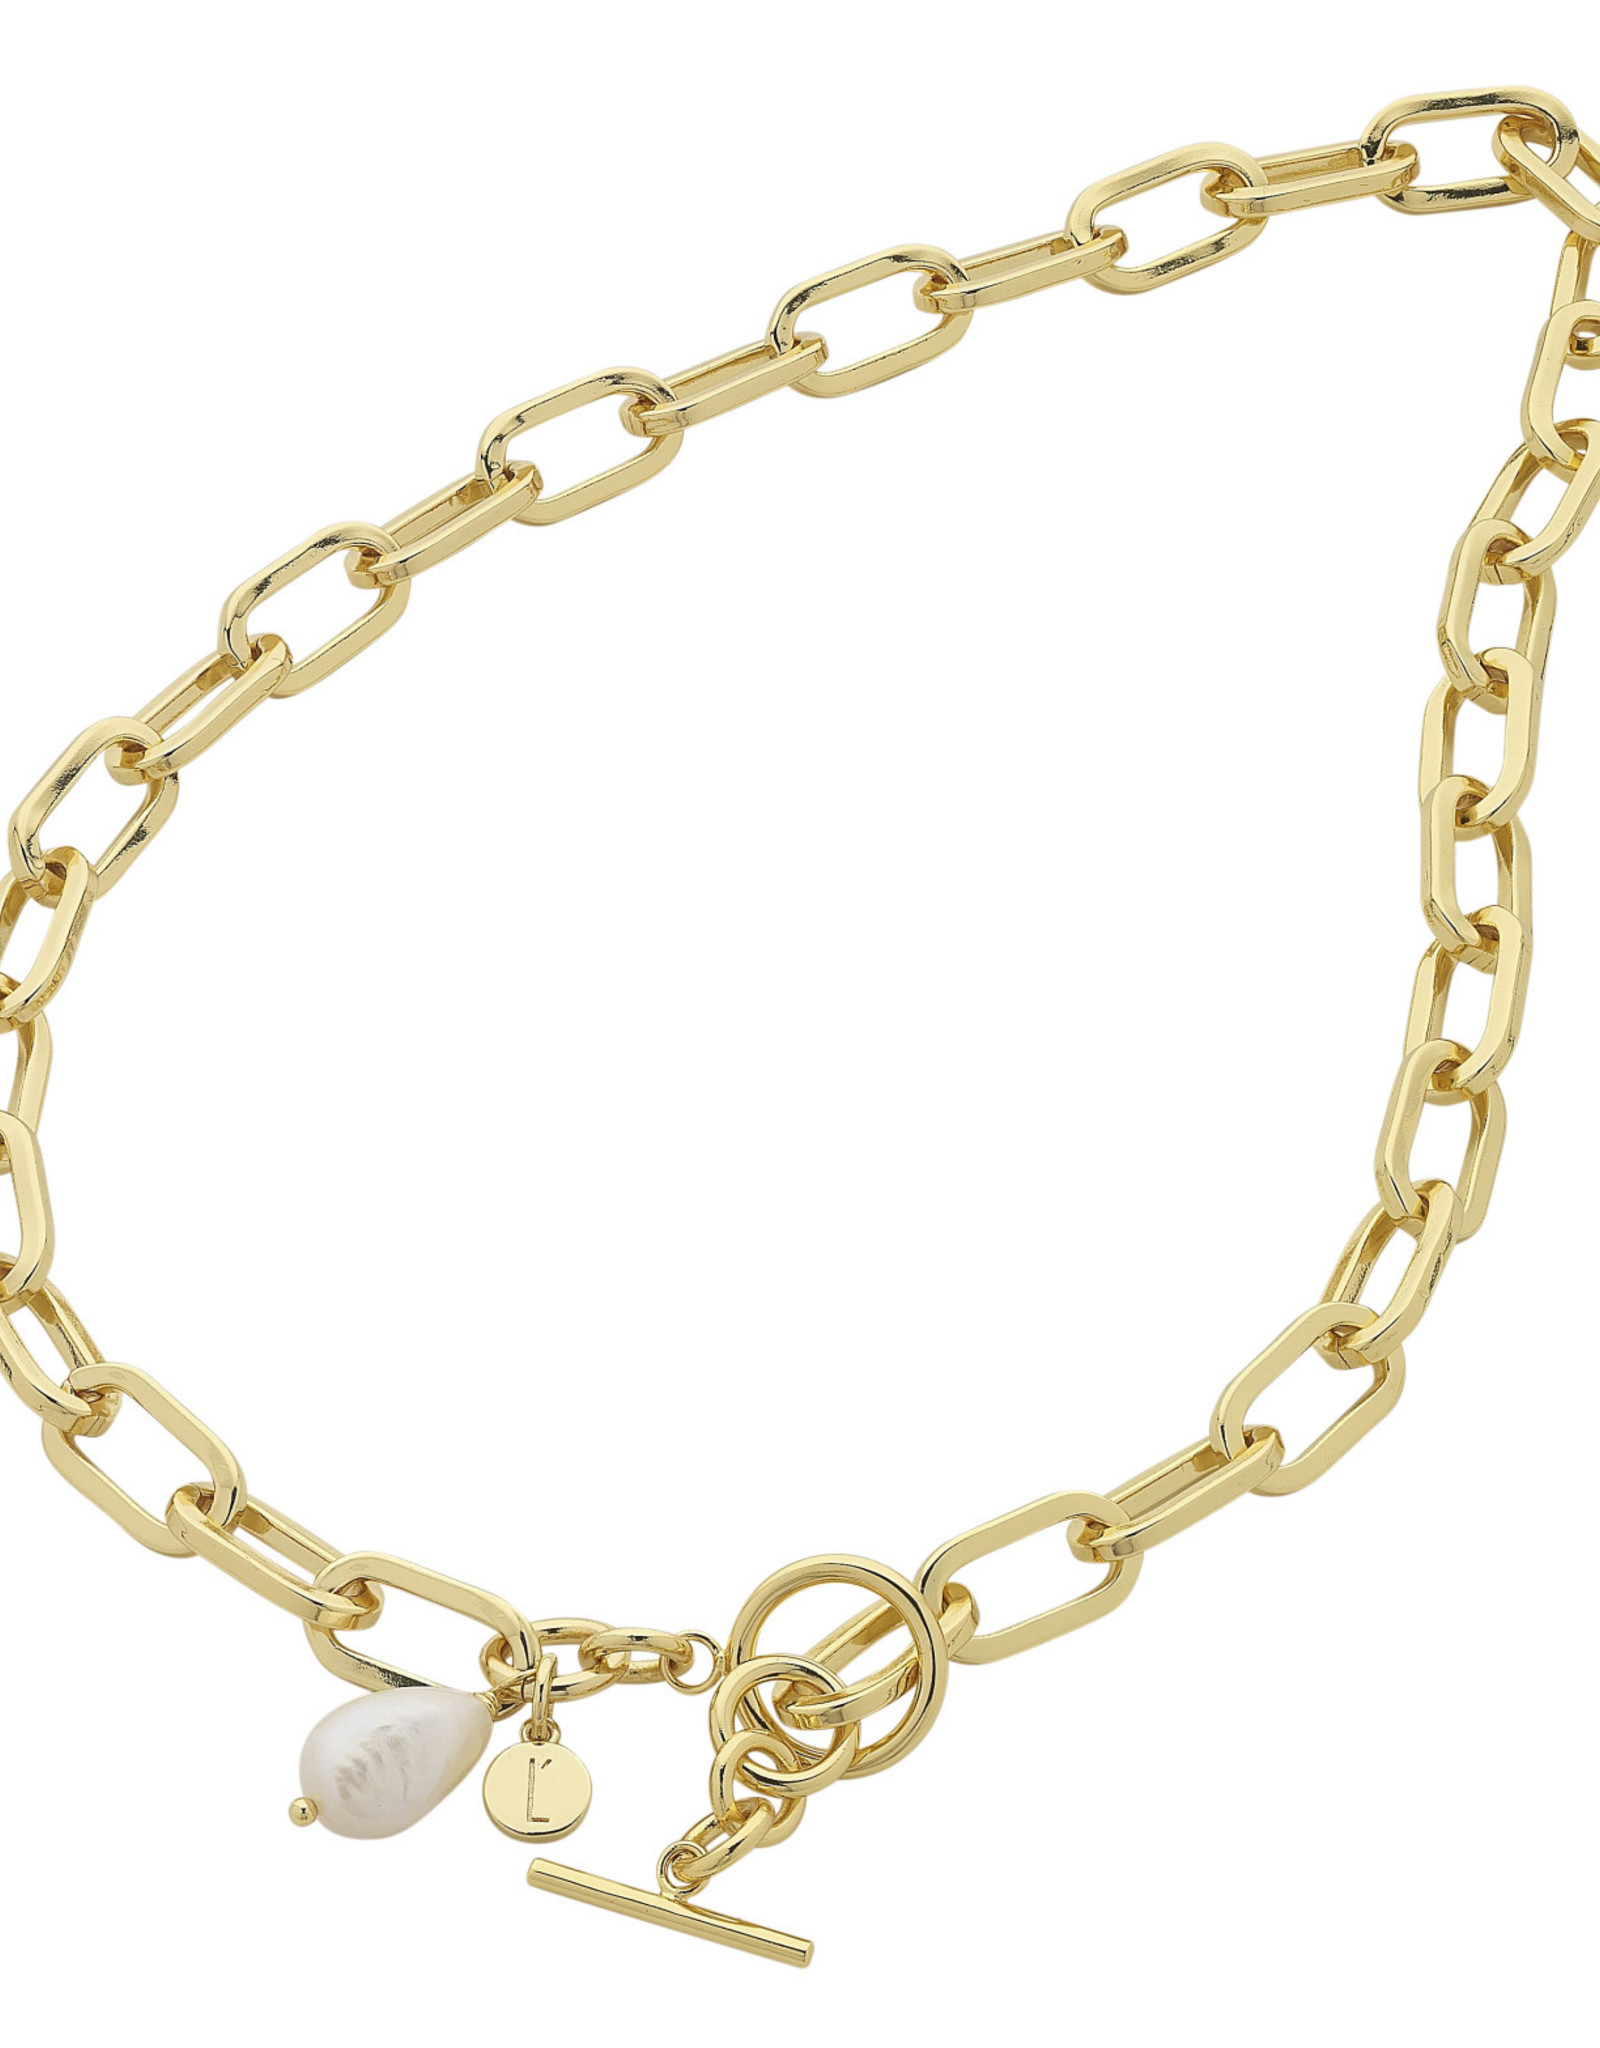 LIBERTE N487A Darcy Gold Necklace